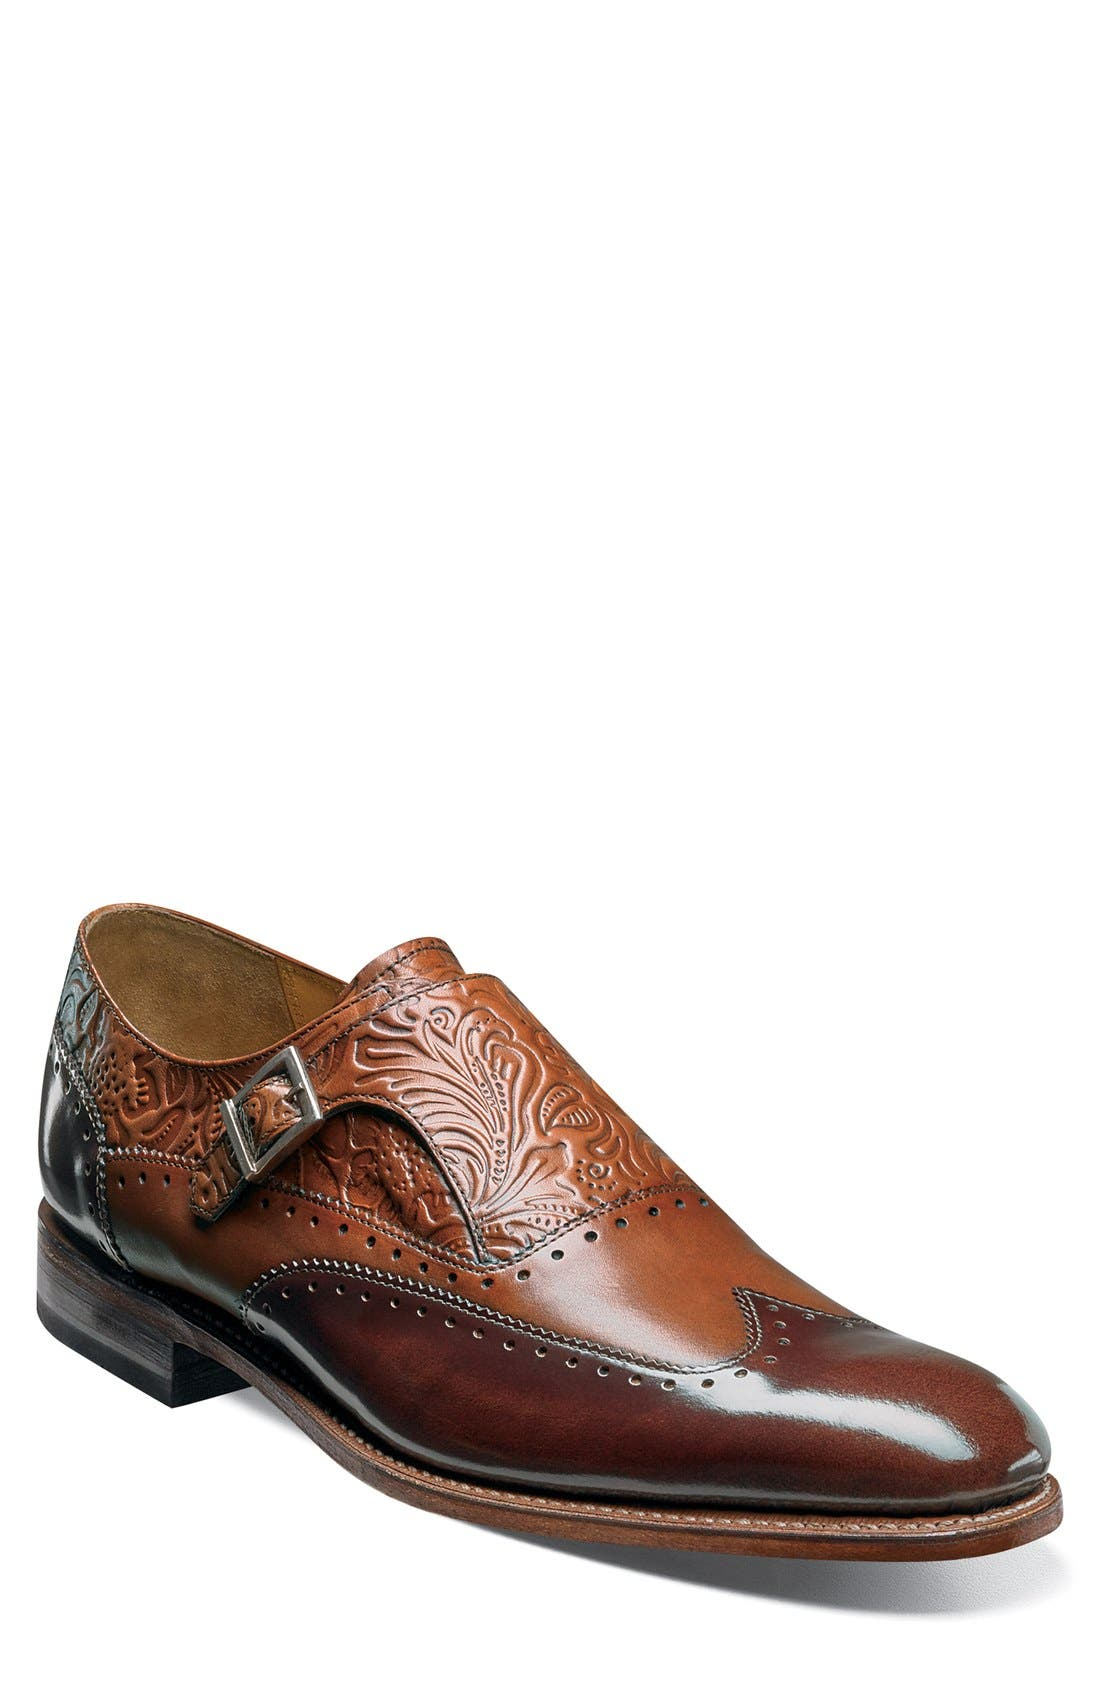 Main Image - Stacy Adams Madison II Monk Strap Shoe (Men)